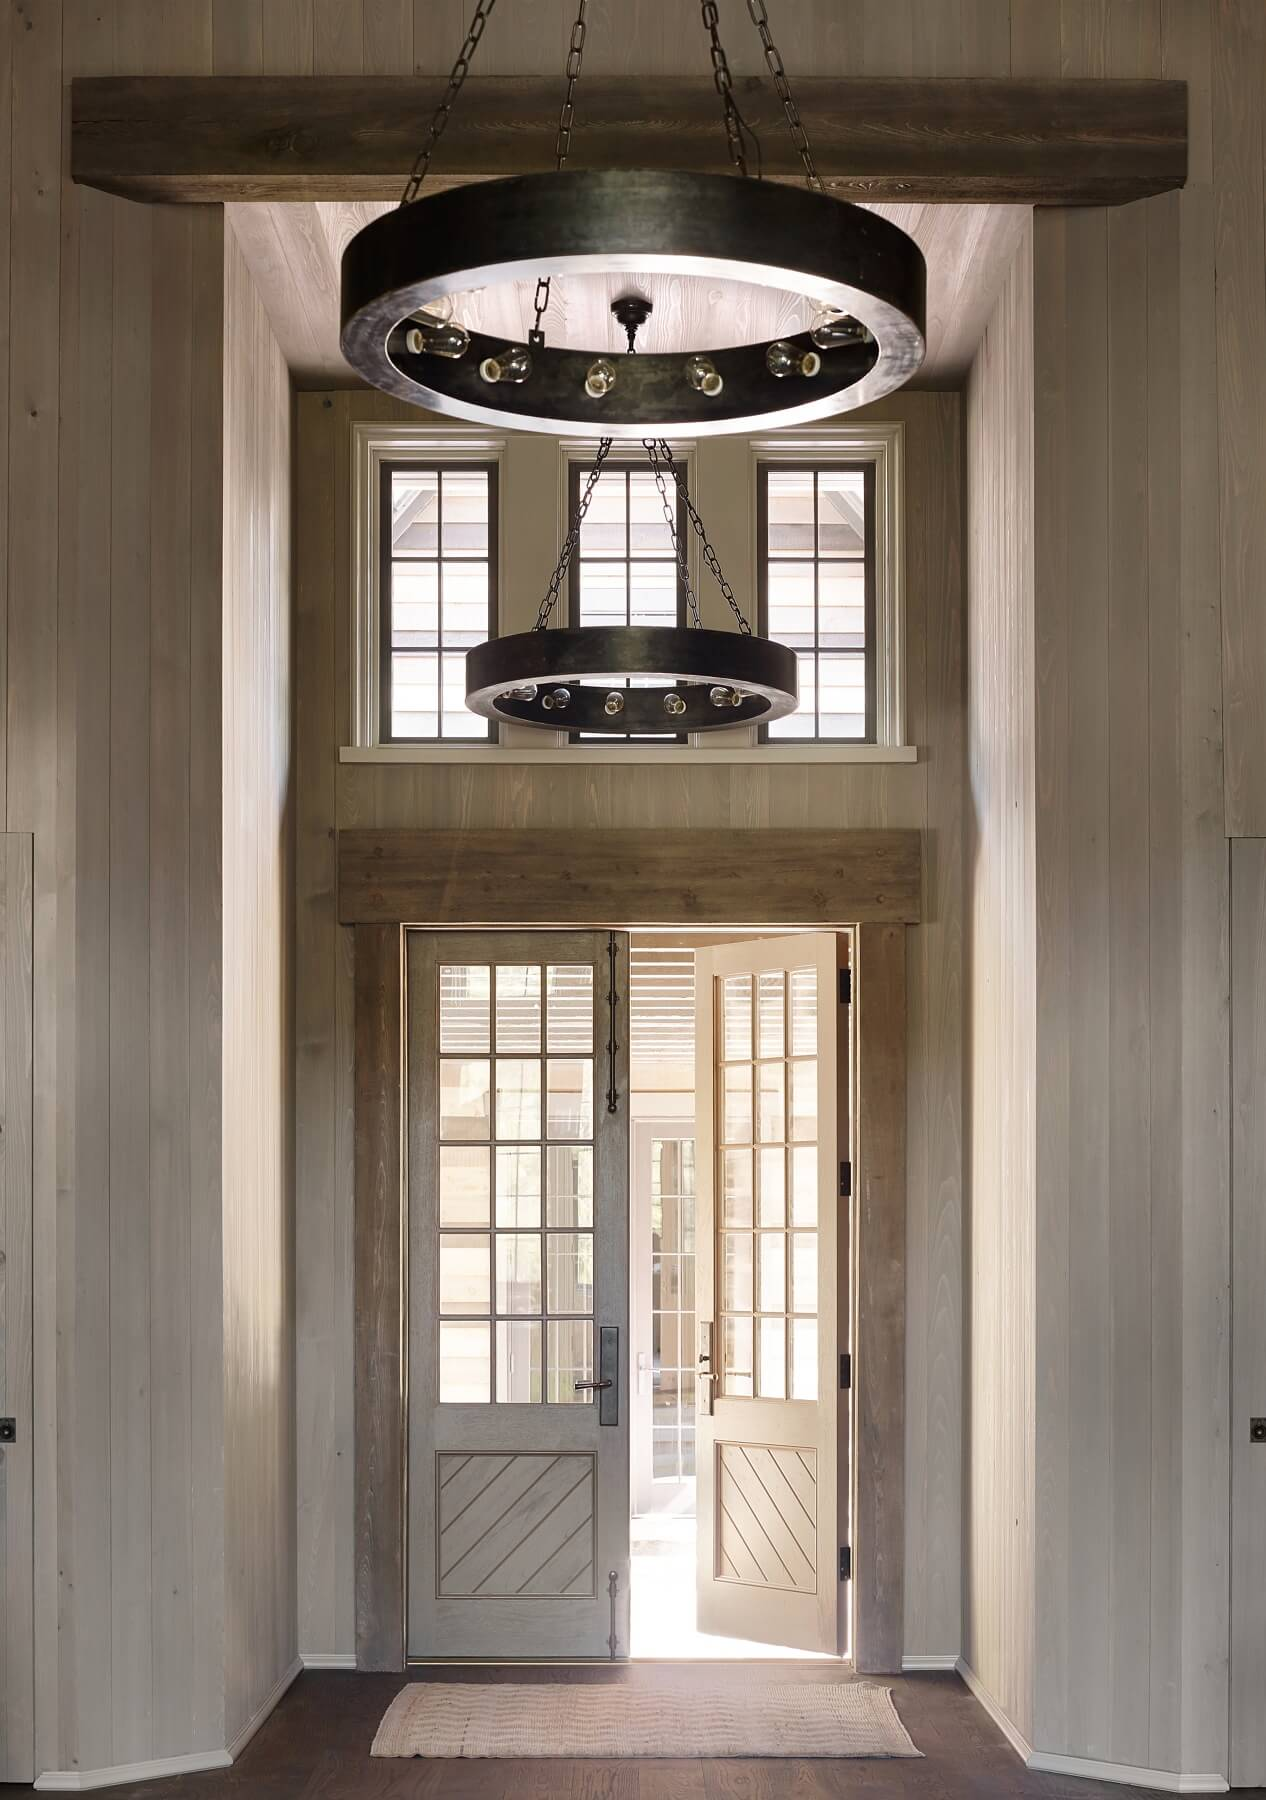 Light floods the foyer for a calming feel, a perfect 'welcome home'!